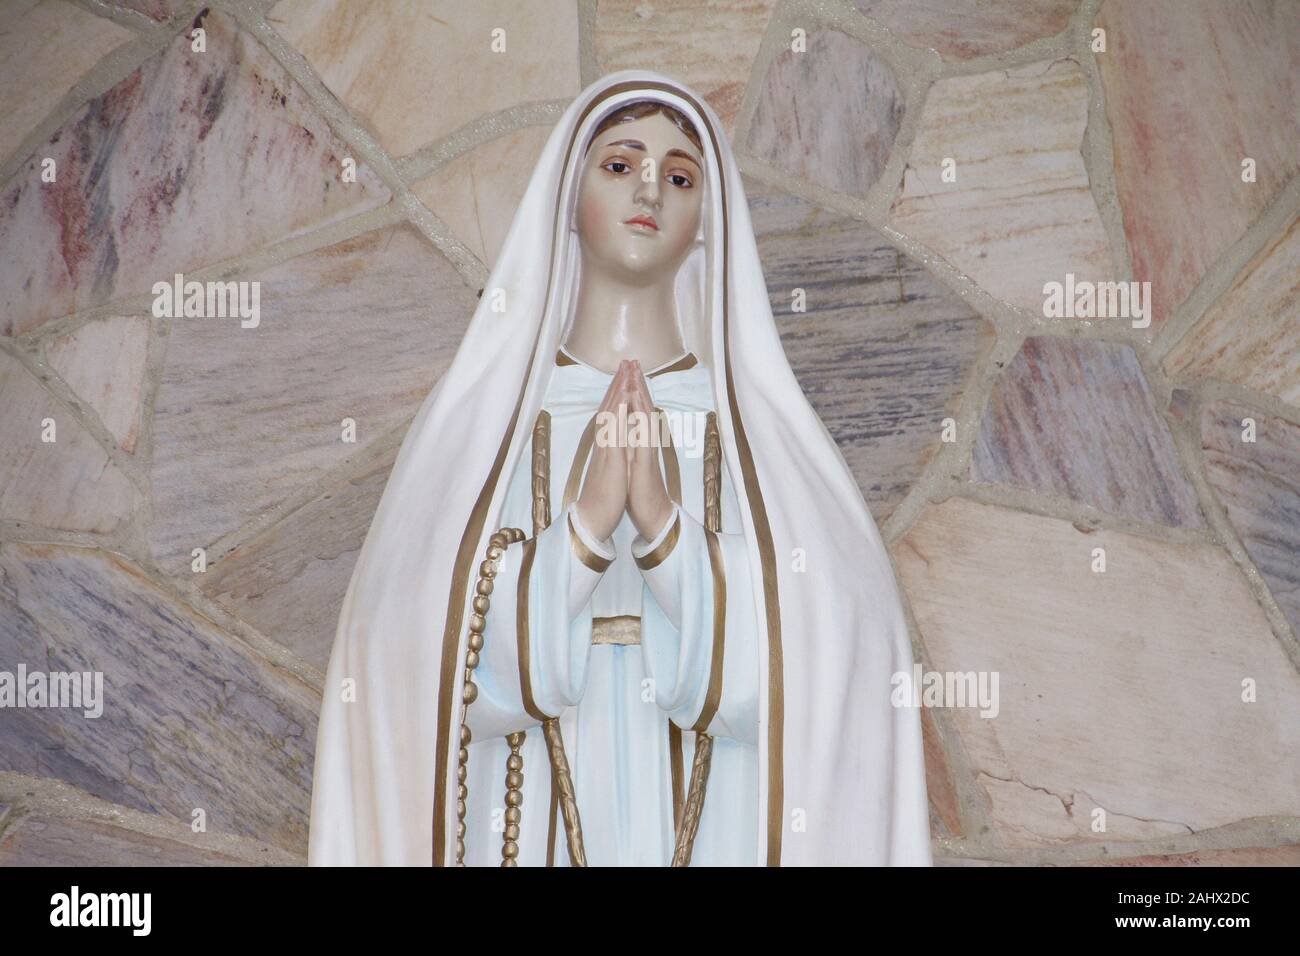 Statue Of The Image Of Our Lady Of Fatima Mother Of God In The